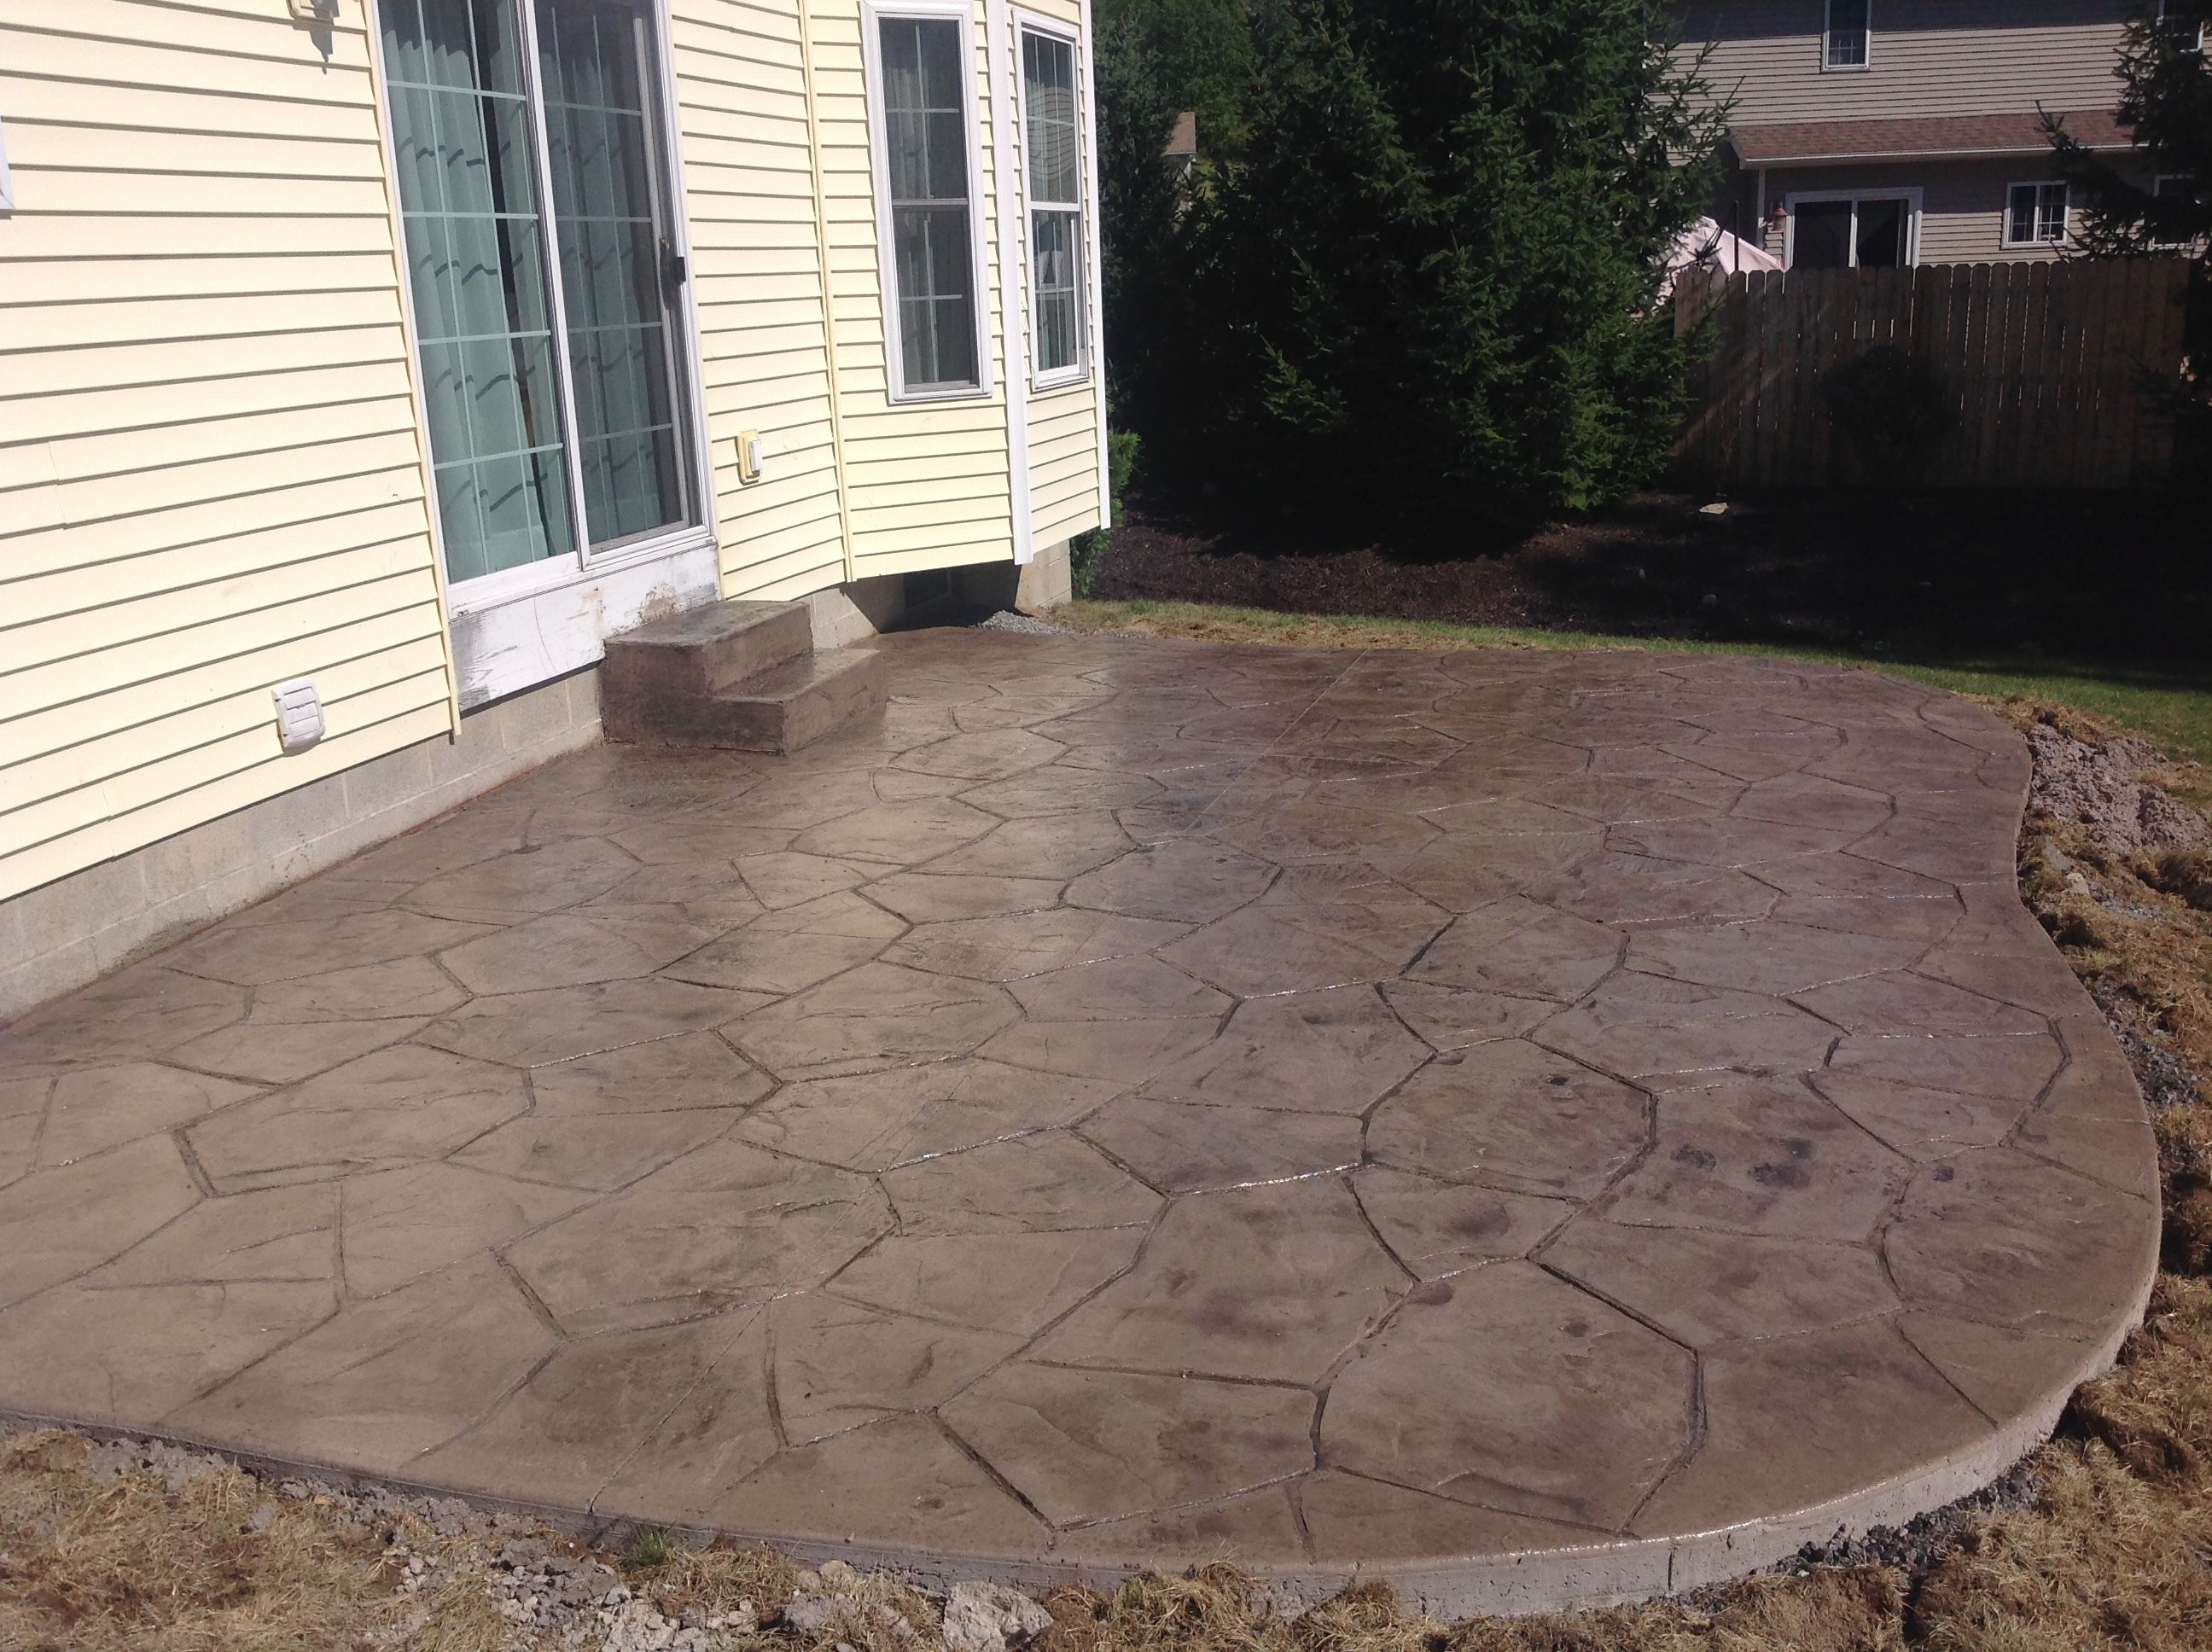 Orchard Stone Stamped Concrete Patio In Genesseo Ny, Conesus Lake Ny